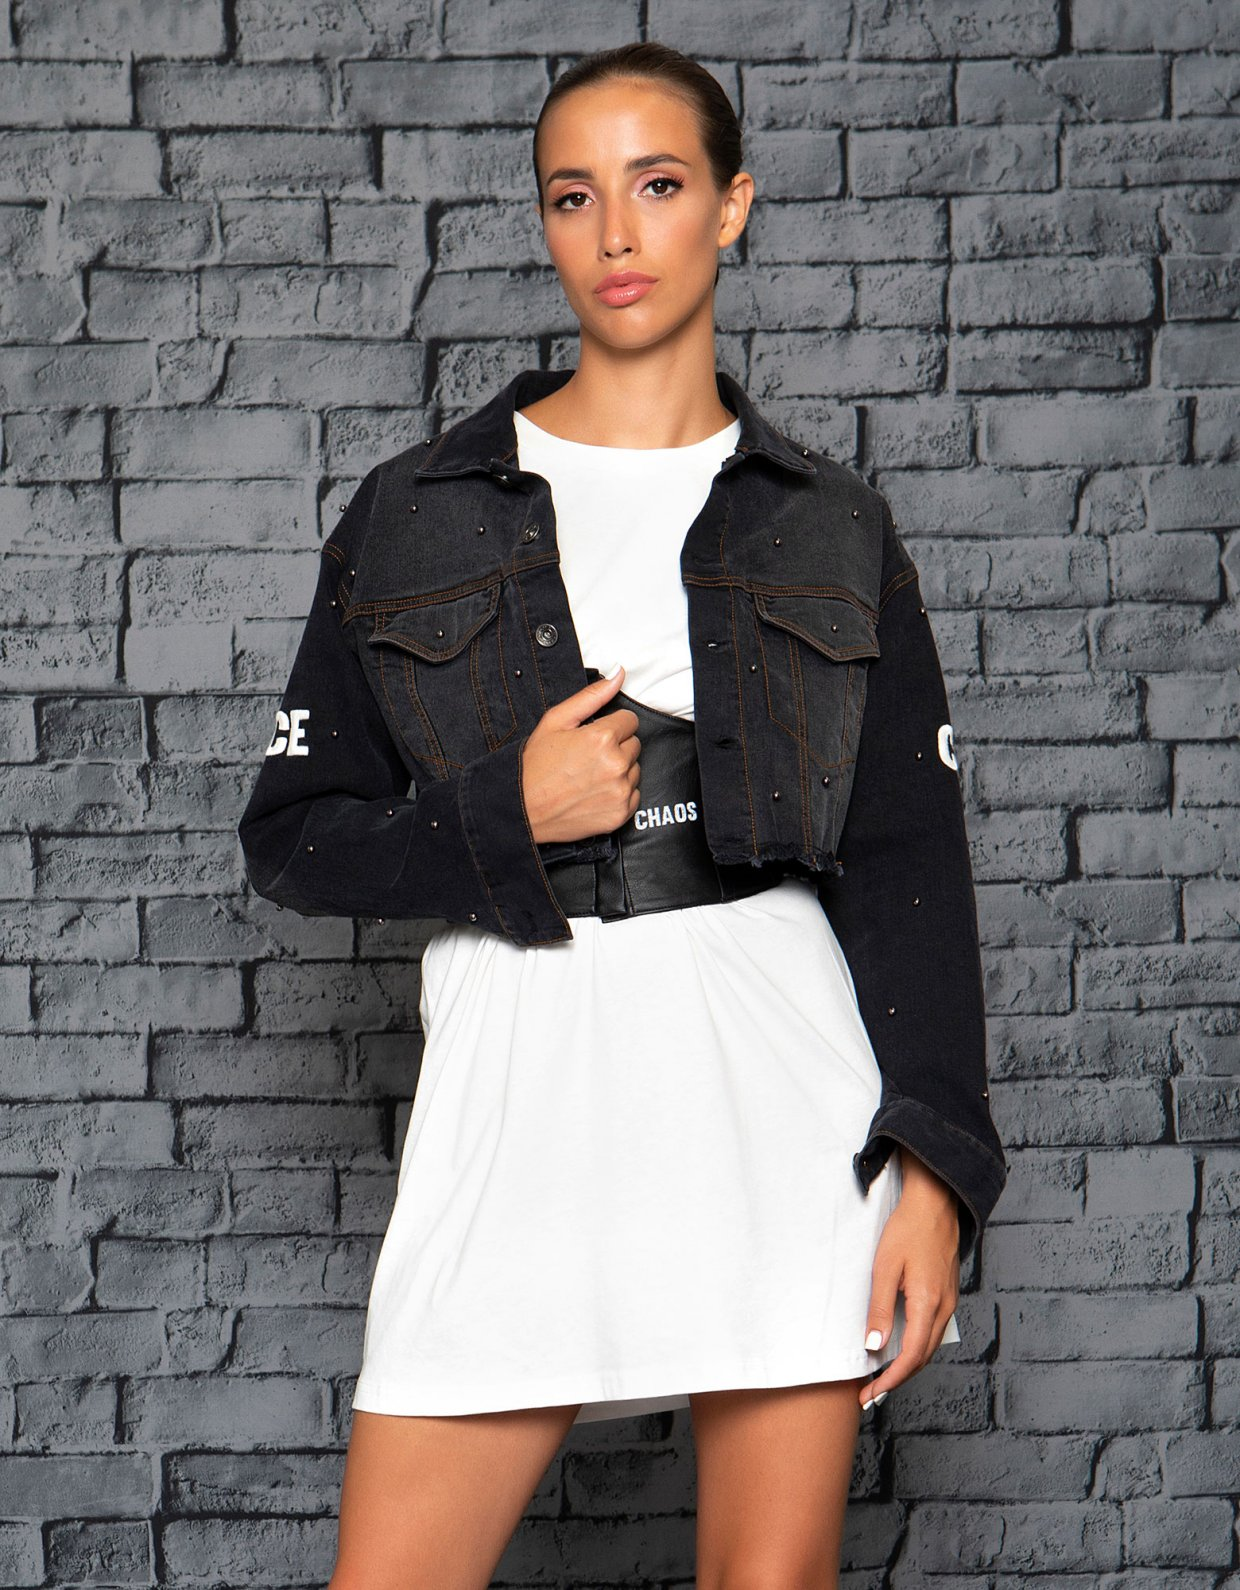 Peace & Chaos Studded denim cropped jacket